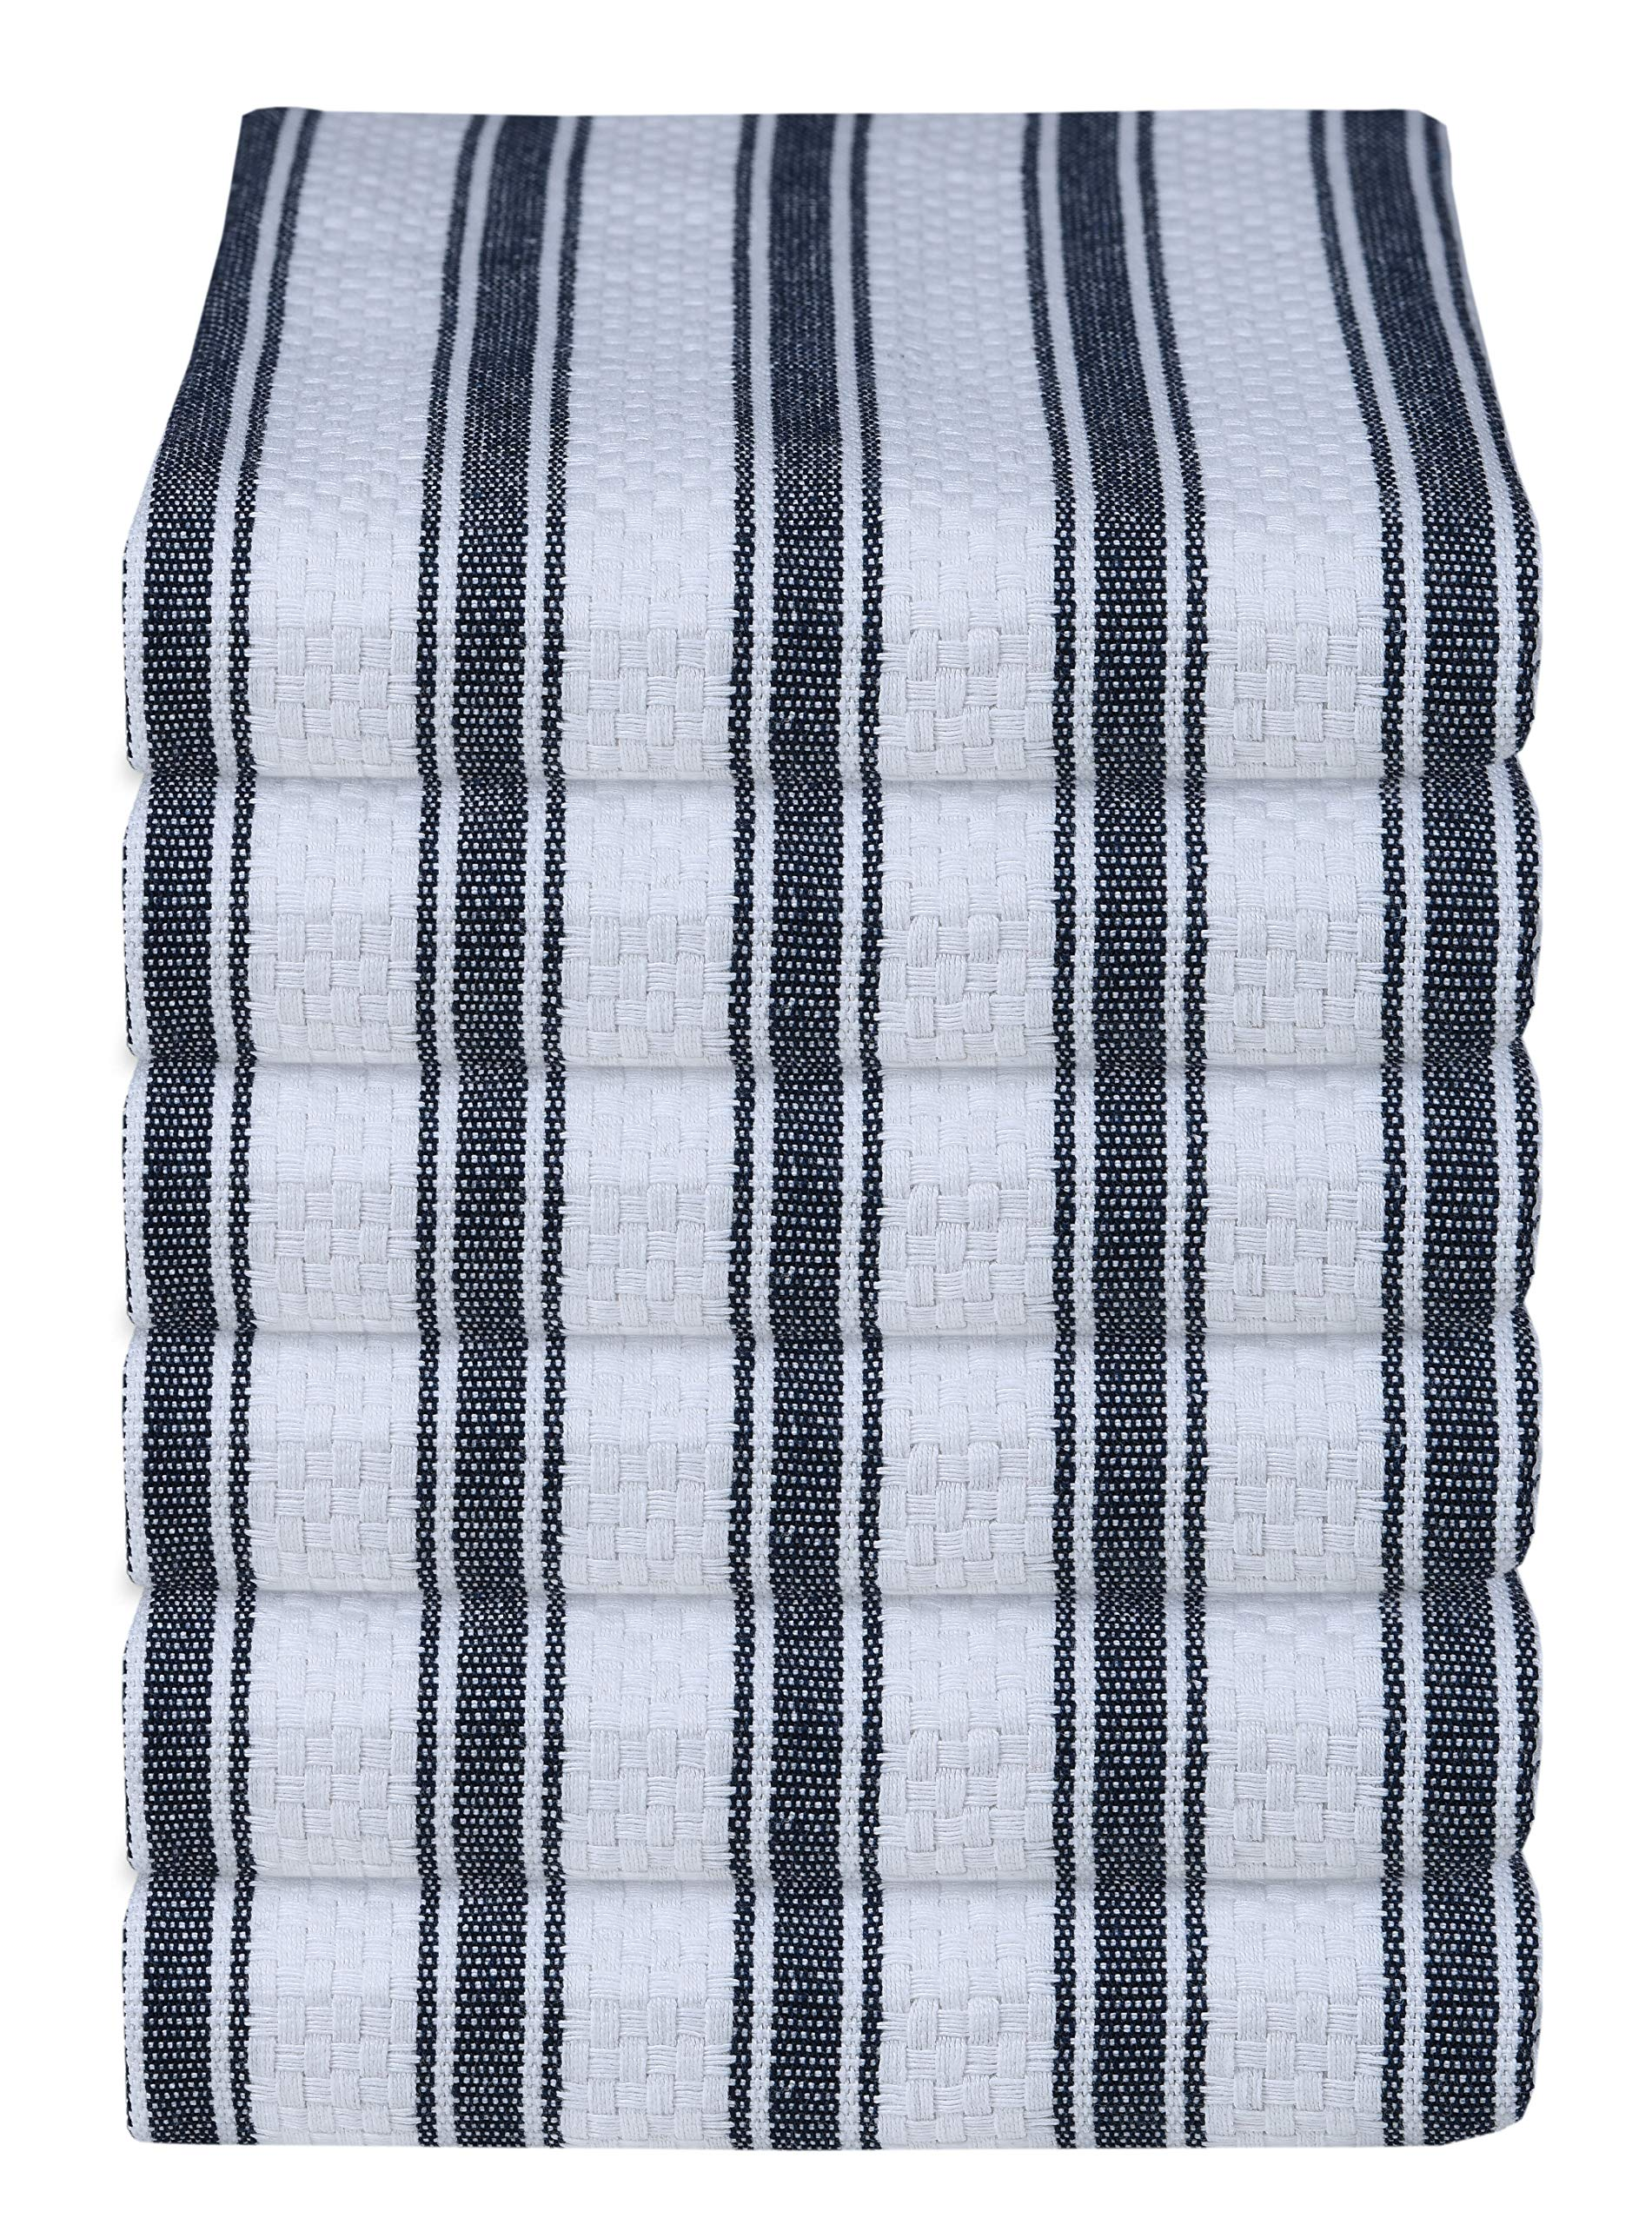 GLAMBURG 100% Cotton Kitchen Towels and Dish Cloth Sets, 6 Pack 18x28 Basket Weave Stripe Dish Towels, Tea Towels, Bar Towels, Cleaning Towels, Highly Absorbent Dishcloth, Kitchen Towel Set Navy Blue